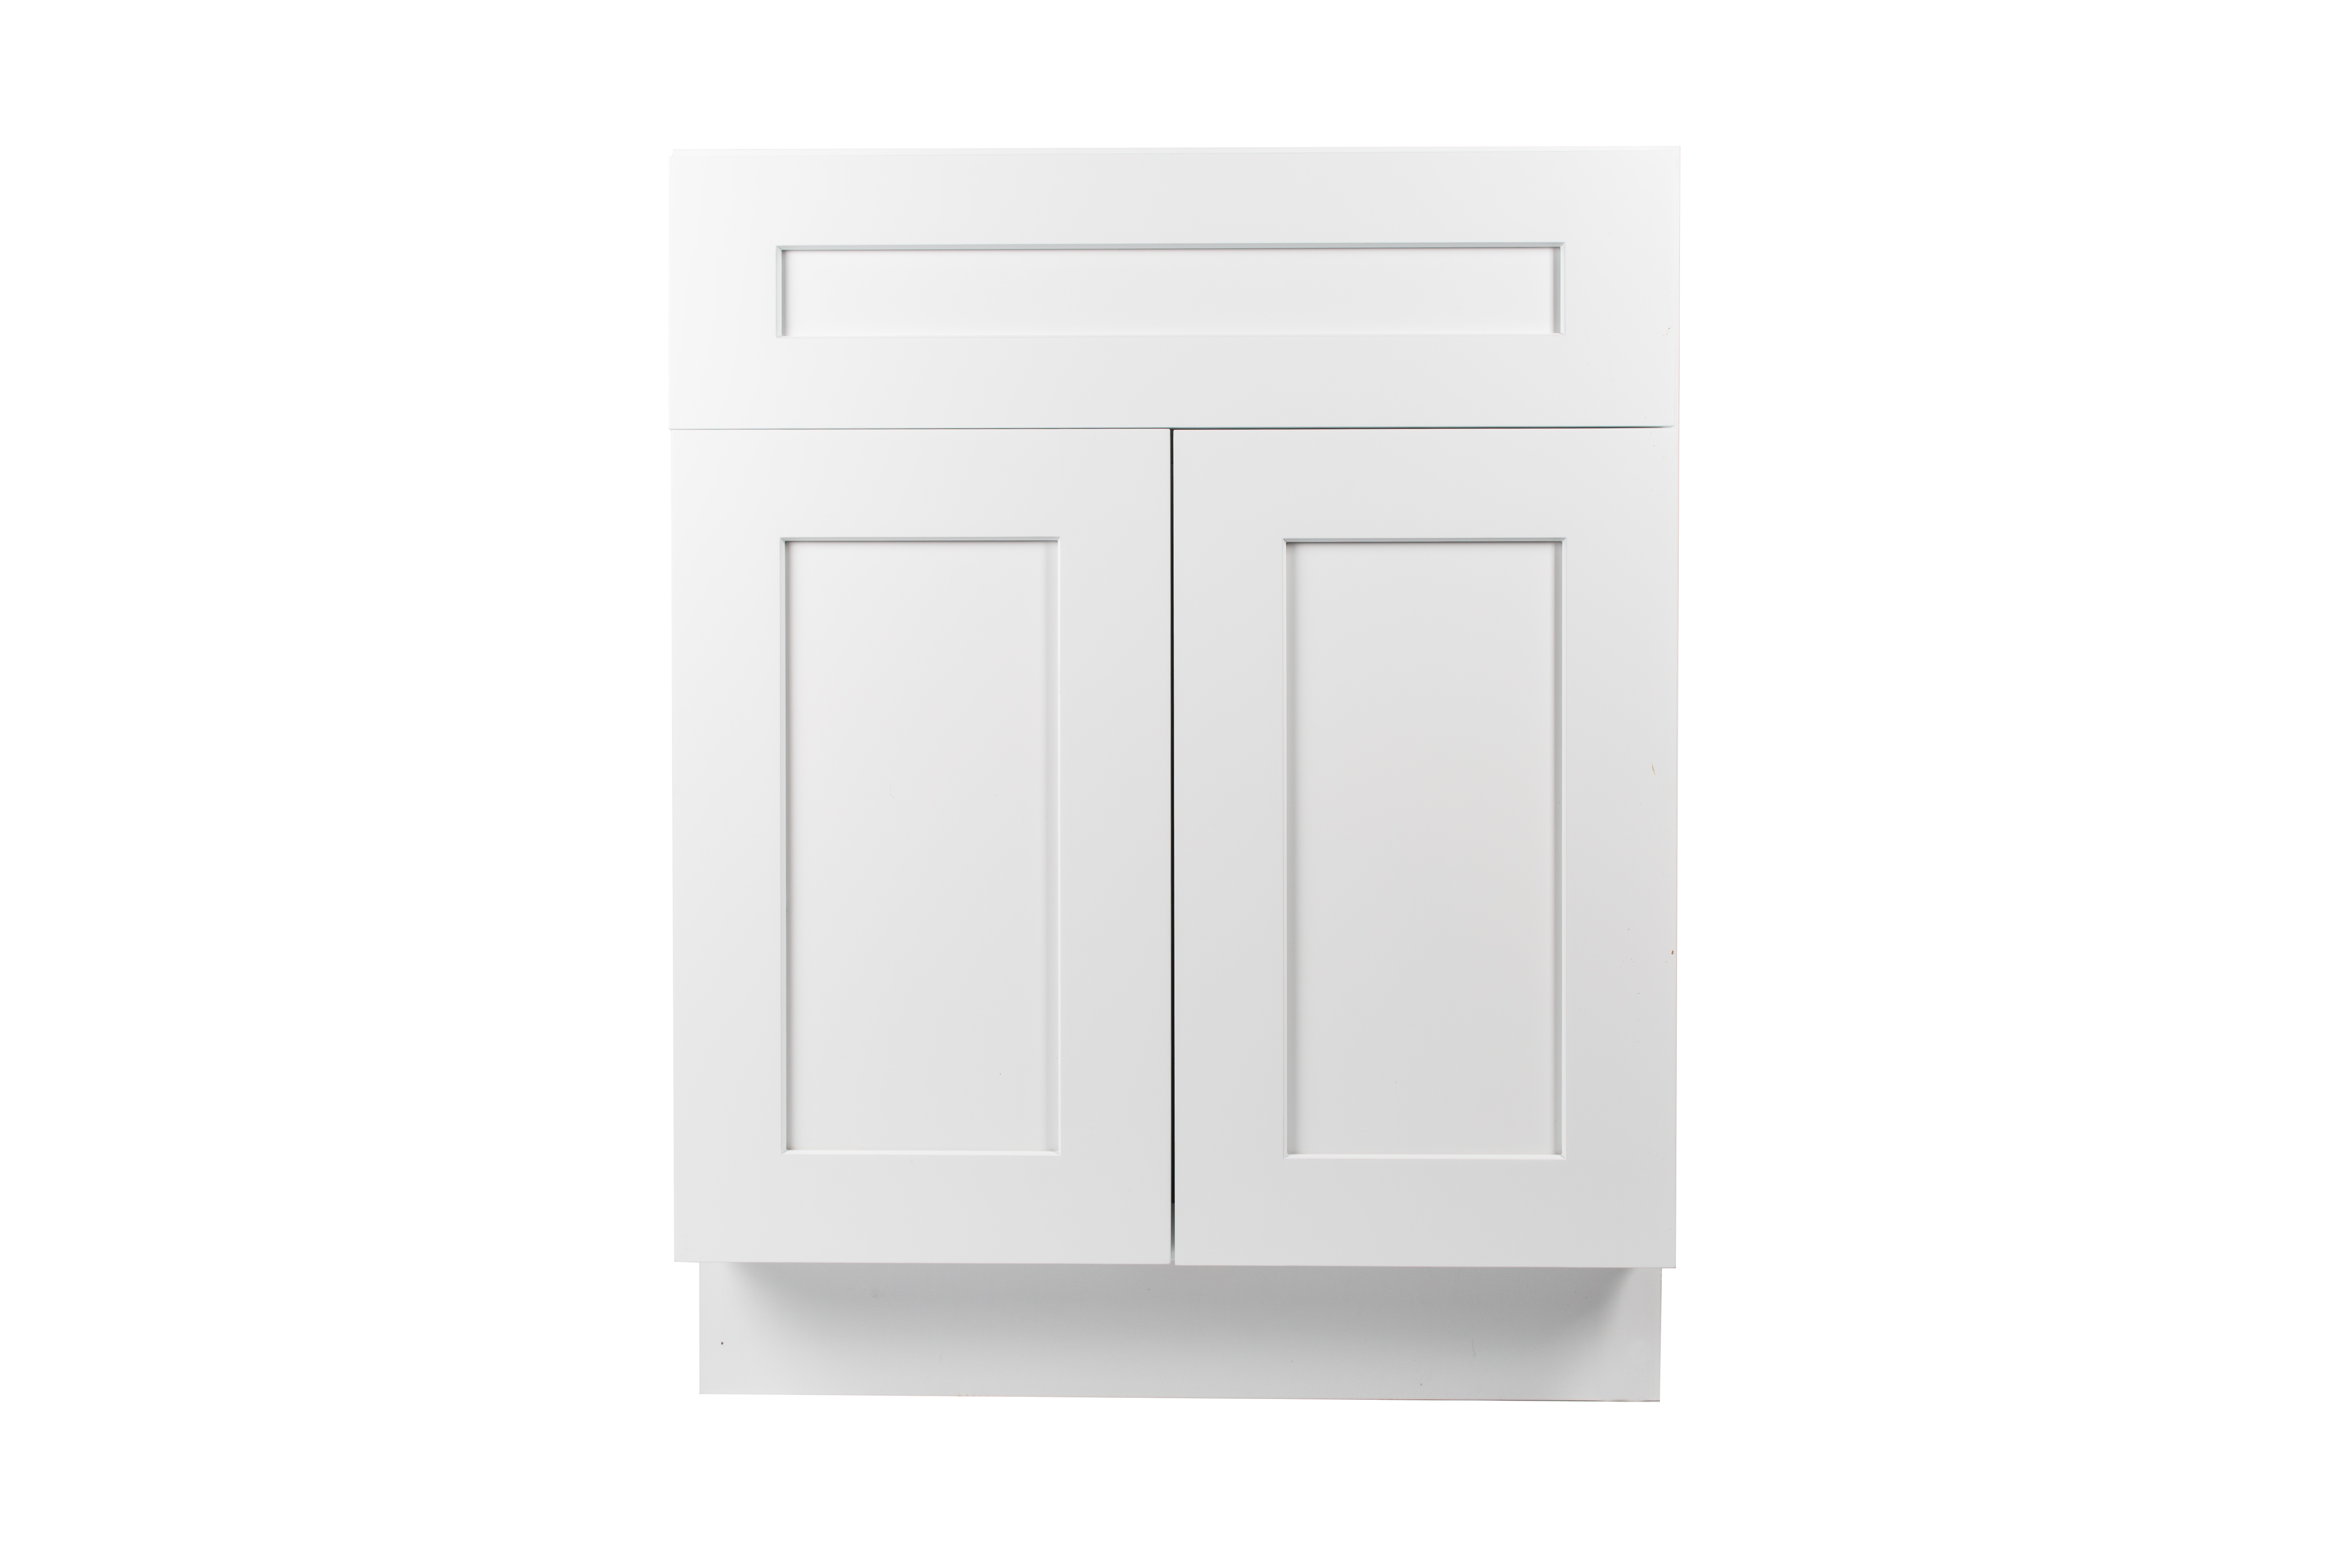 Ready to Assemble 24Wx34.5Hx24D in. Shaker Base Cabinet with 2 Door and 1 Drawer in White